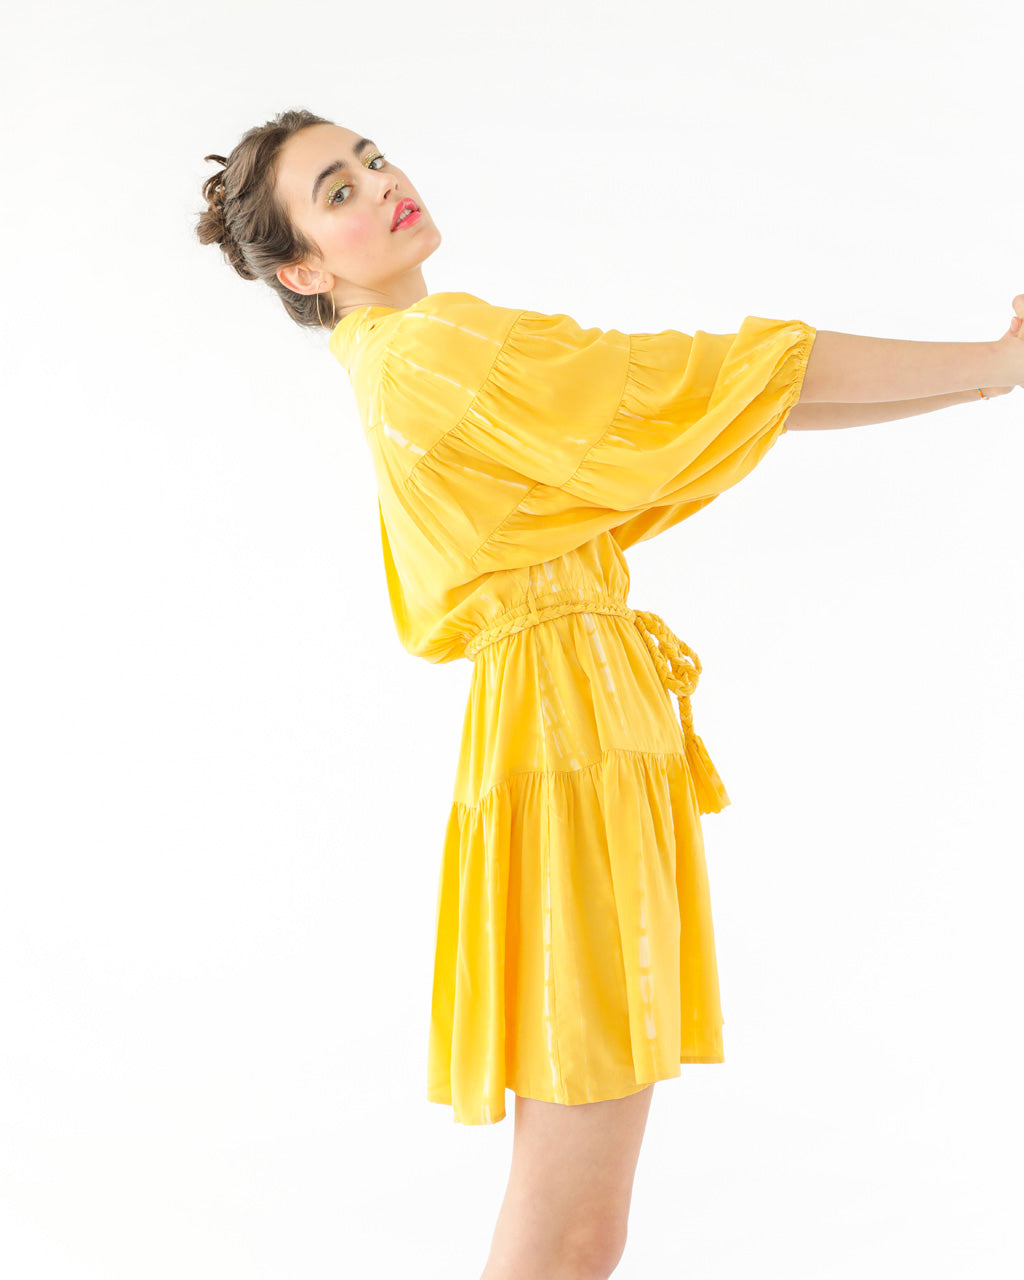 side view of model wearing a yellow above the knee tie dye dress with a braided rope tie belt